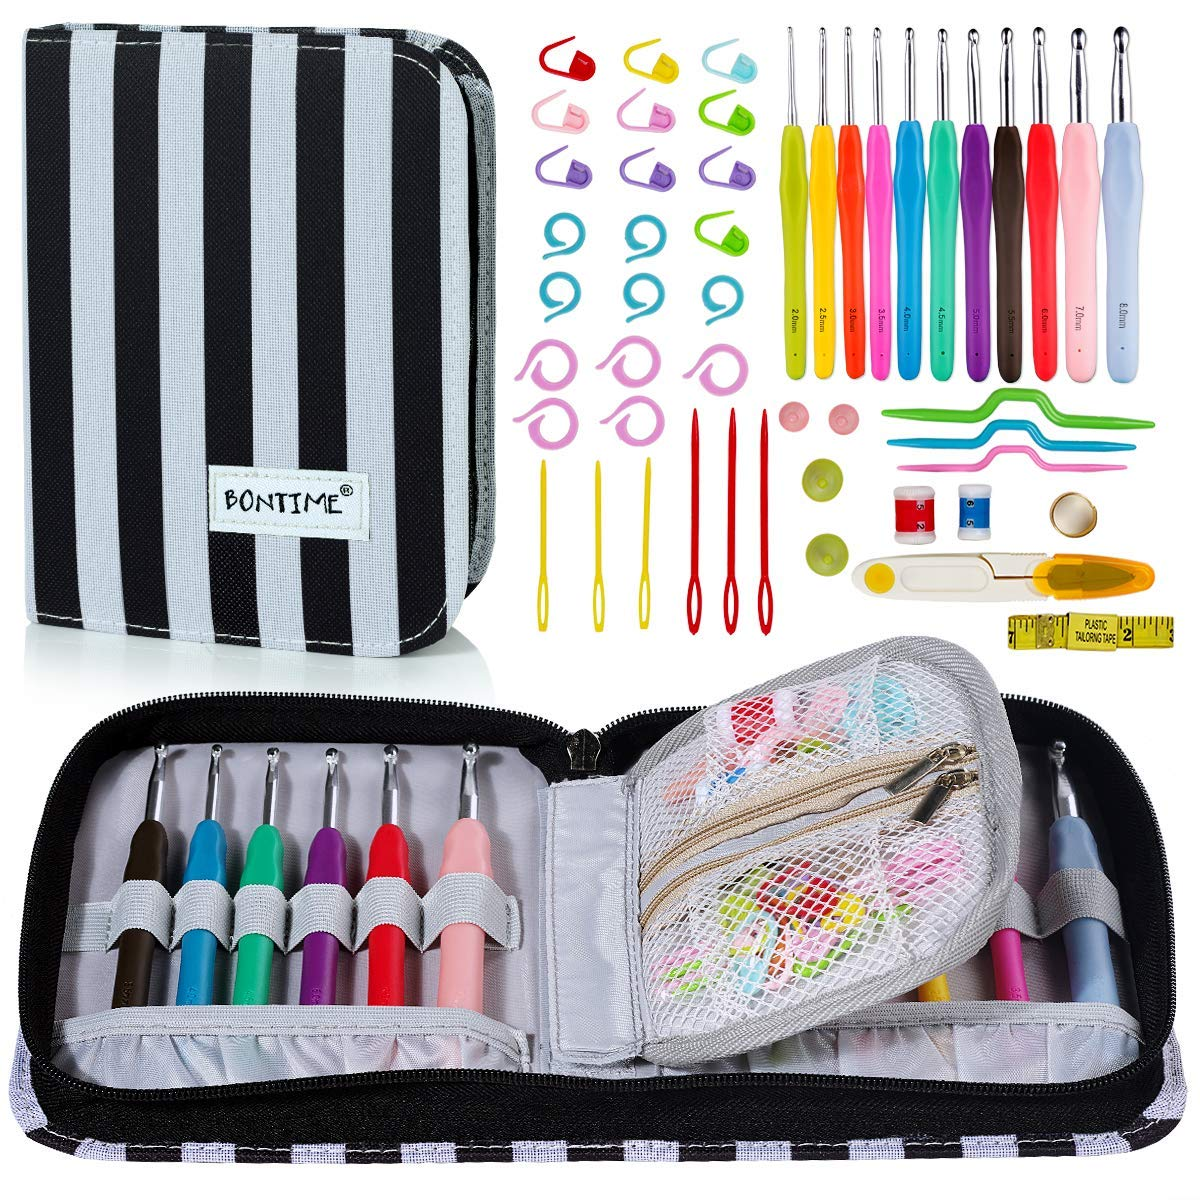 BONTIME Crochet Hooks Set - 11 Pieces Ergonomic Crochet Hooks with Portable Case, Contains All The Crochet Accessories Fit Any Projects, Ideal for Crocheters with Arthritic,Clover Print CTHE2018